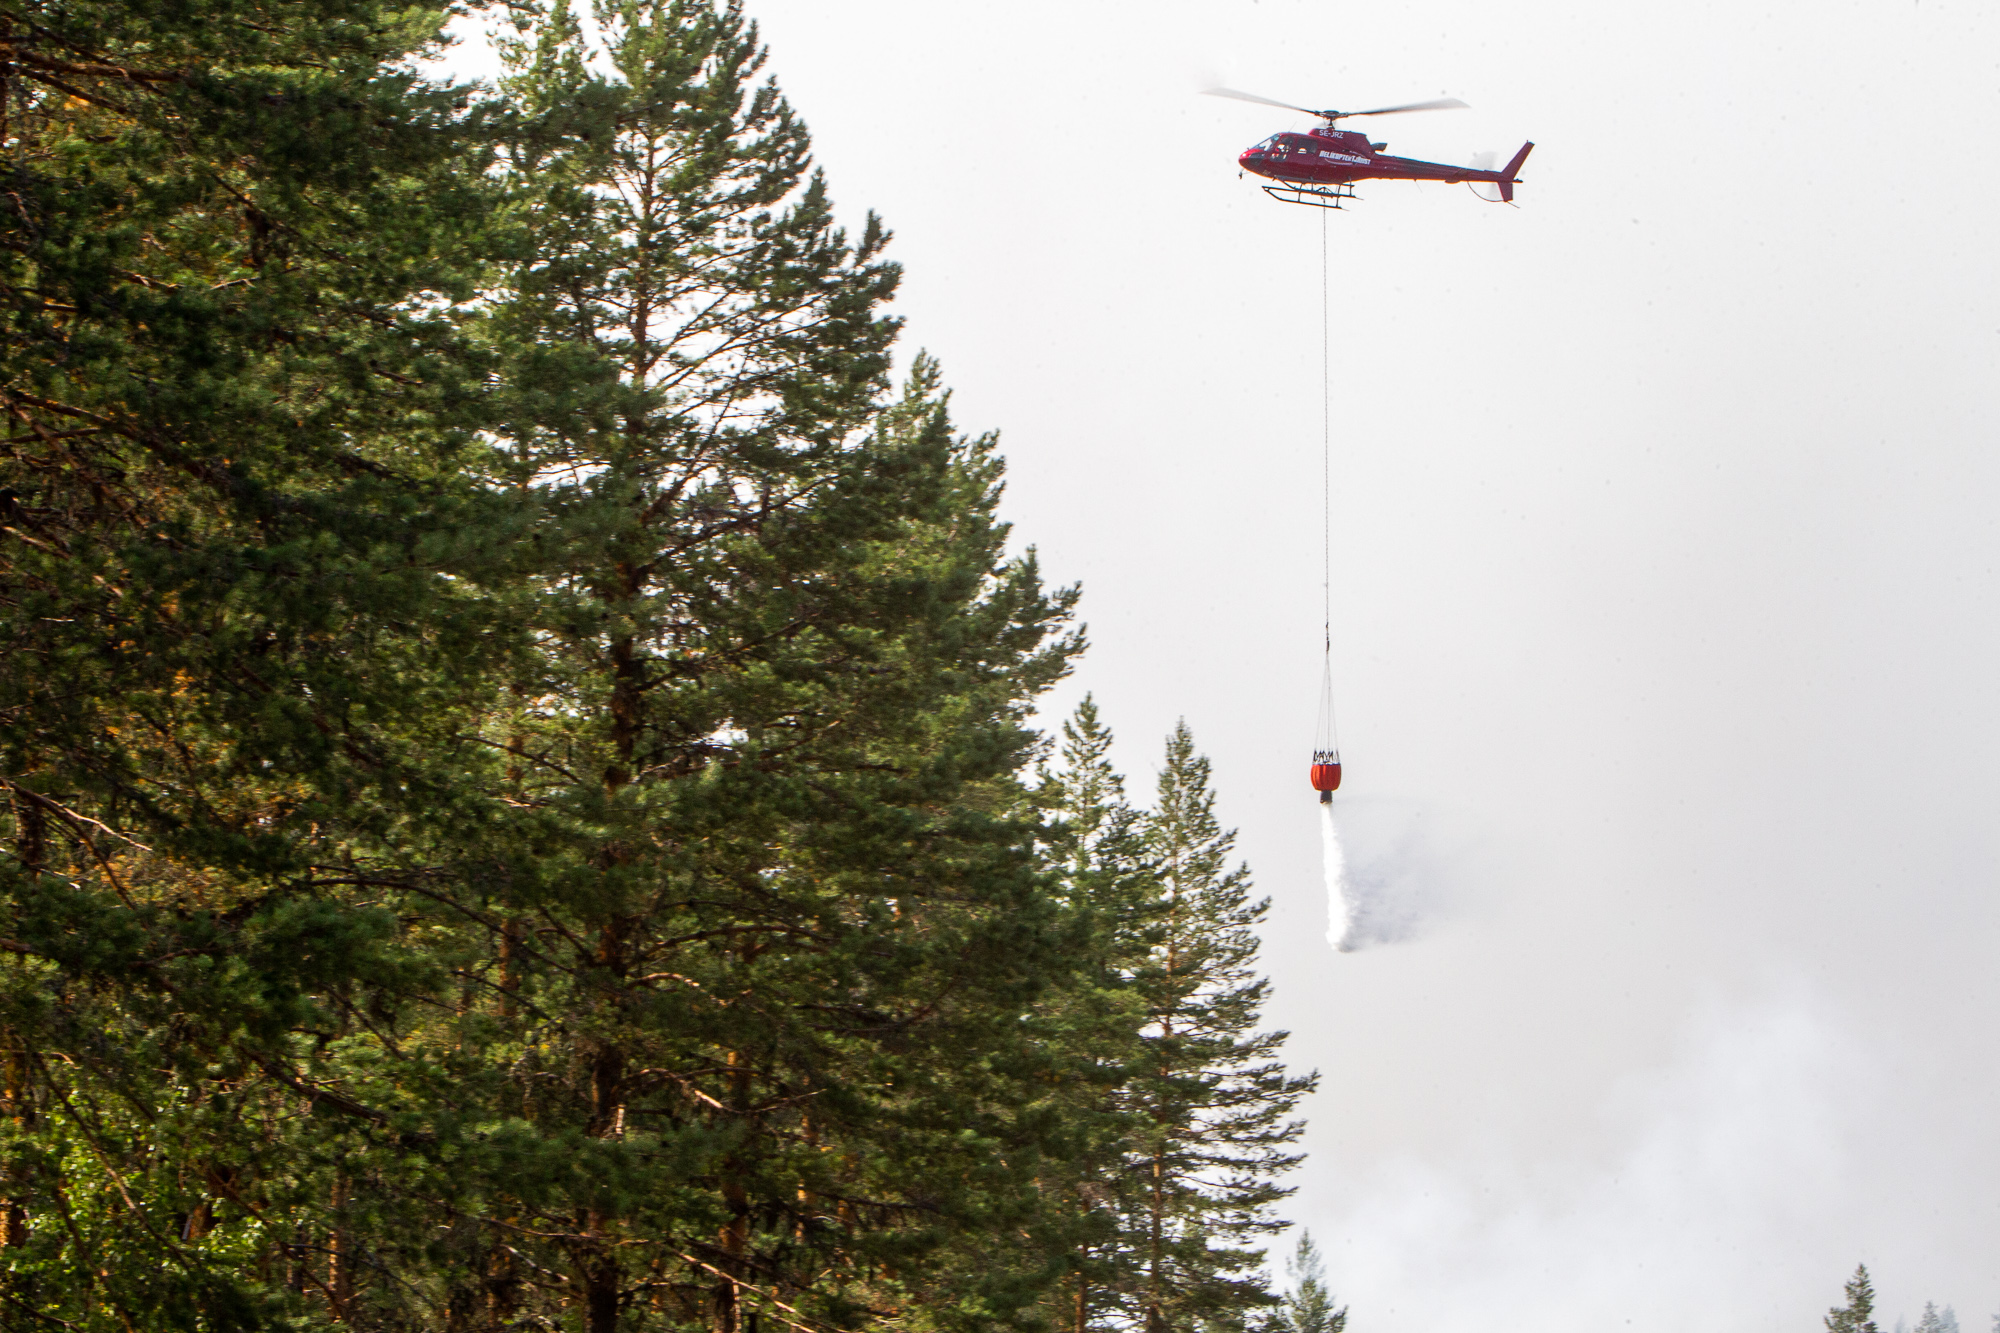 One of the many helicopters water bombing an immense forest fire in Hälsingland, Sweden.